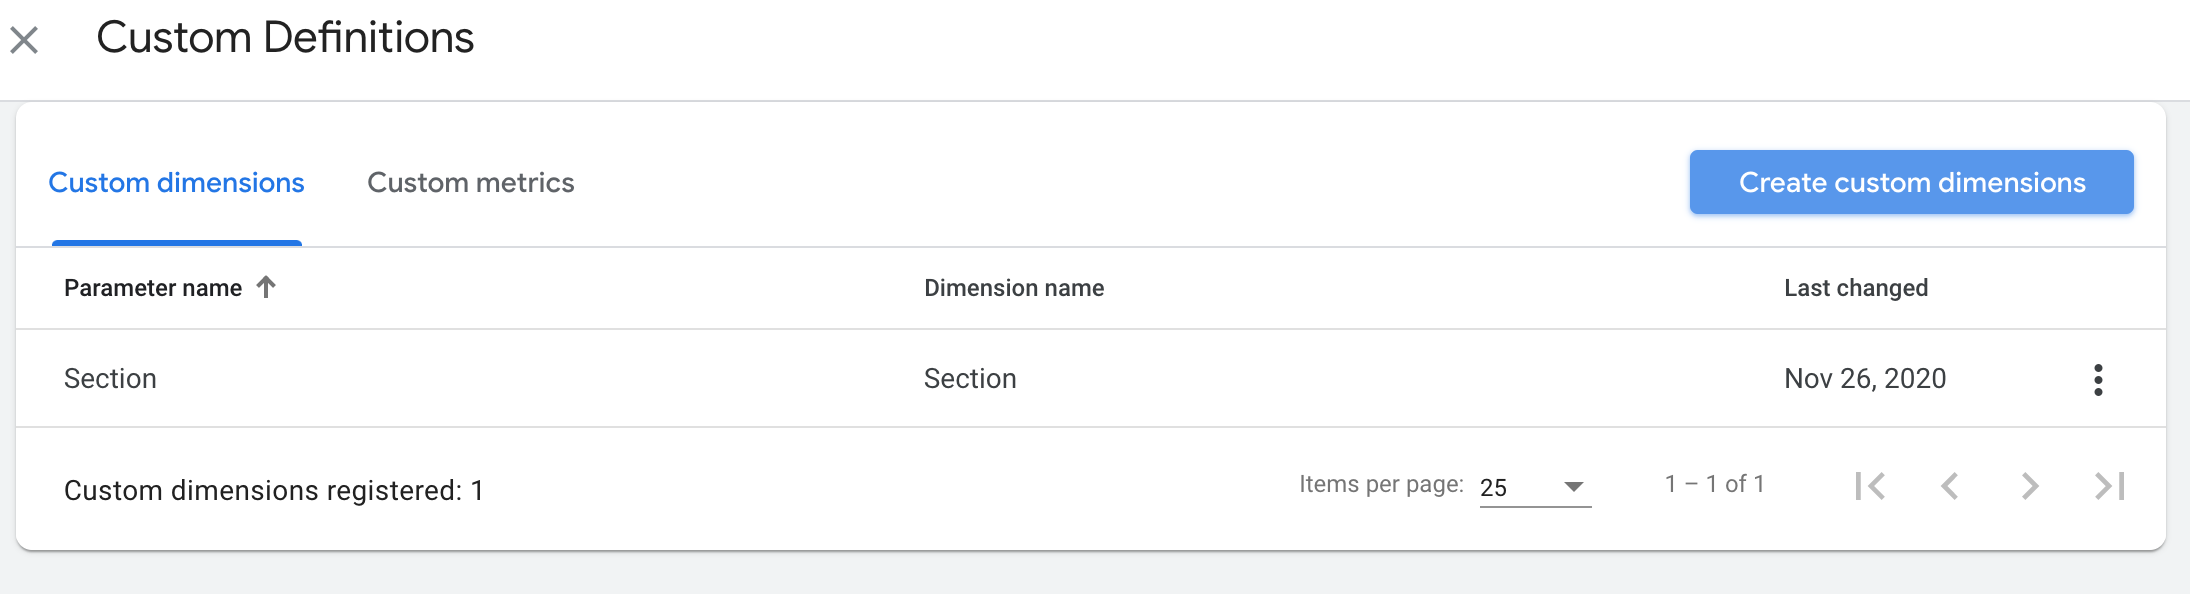 custom definition shows custom dimensions registered one